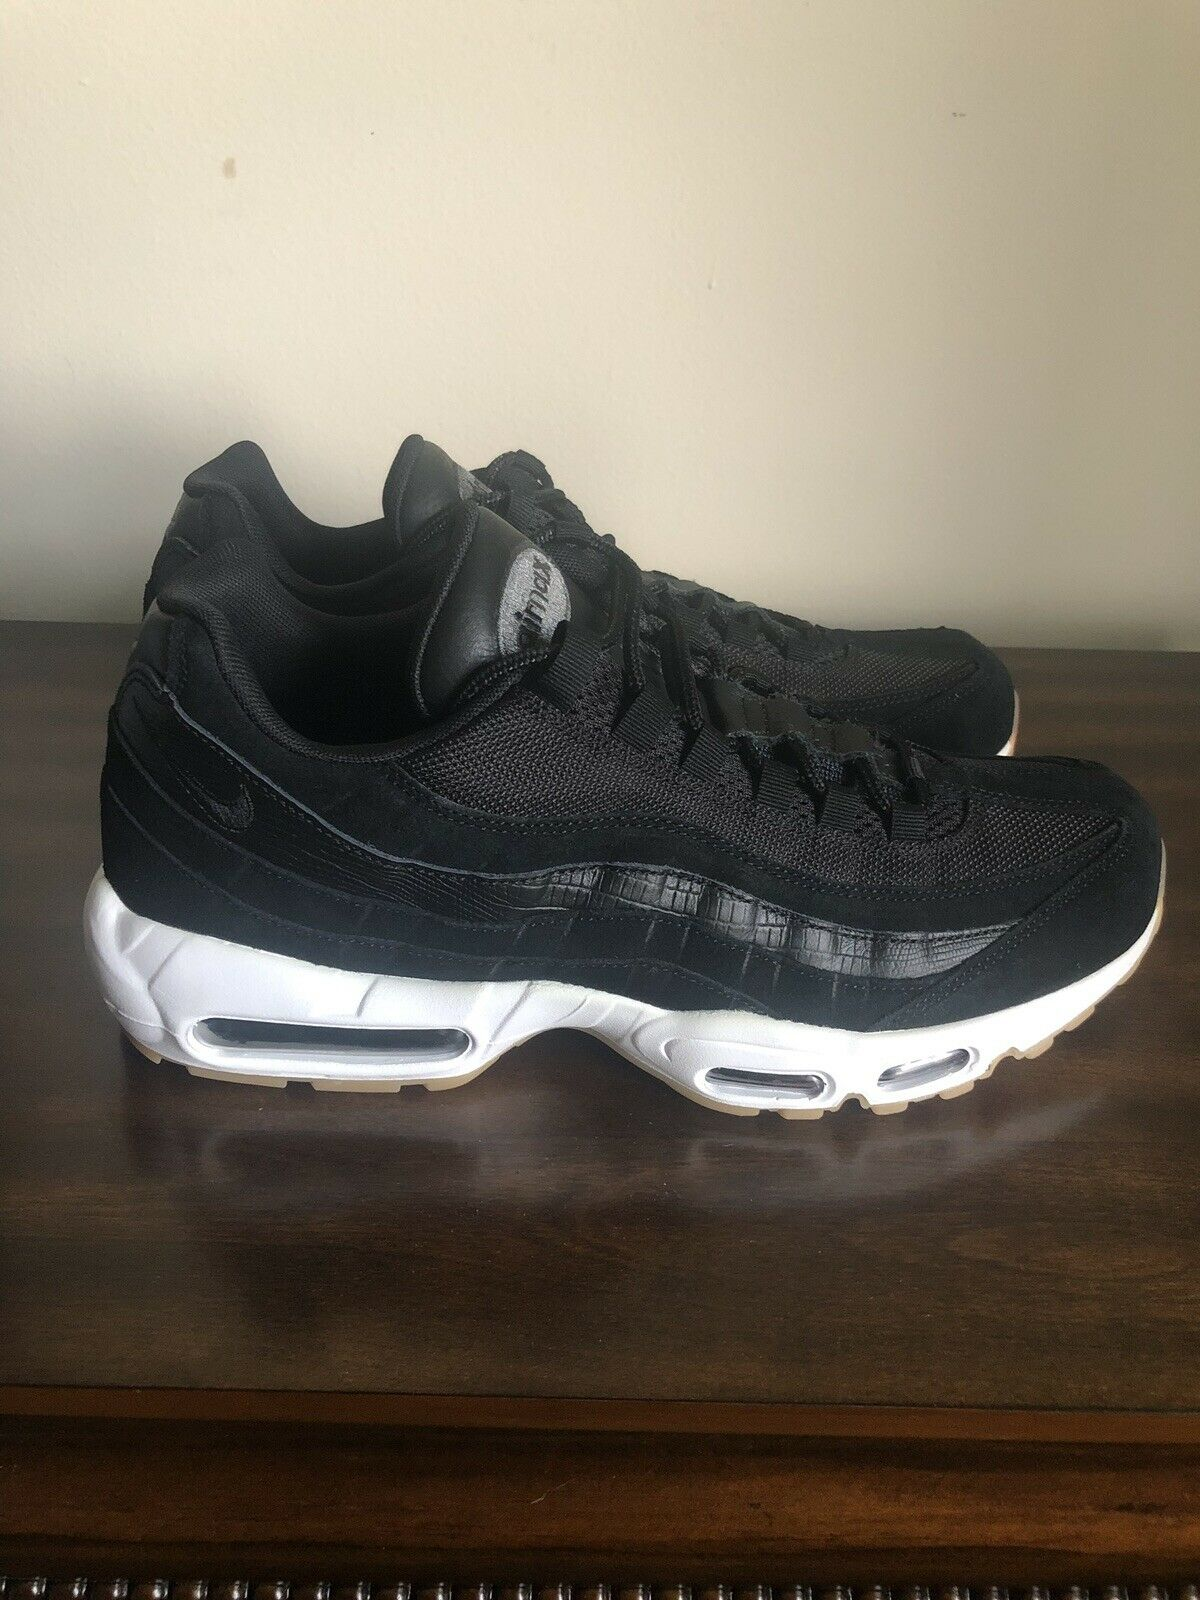 Nike Air Max 95 Essential All White Shoes For Men 807443 015